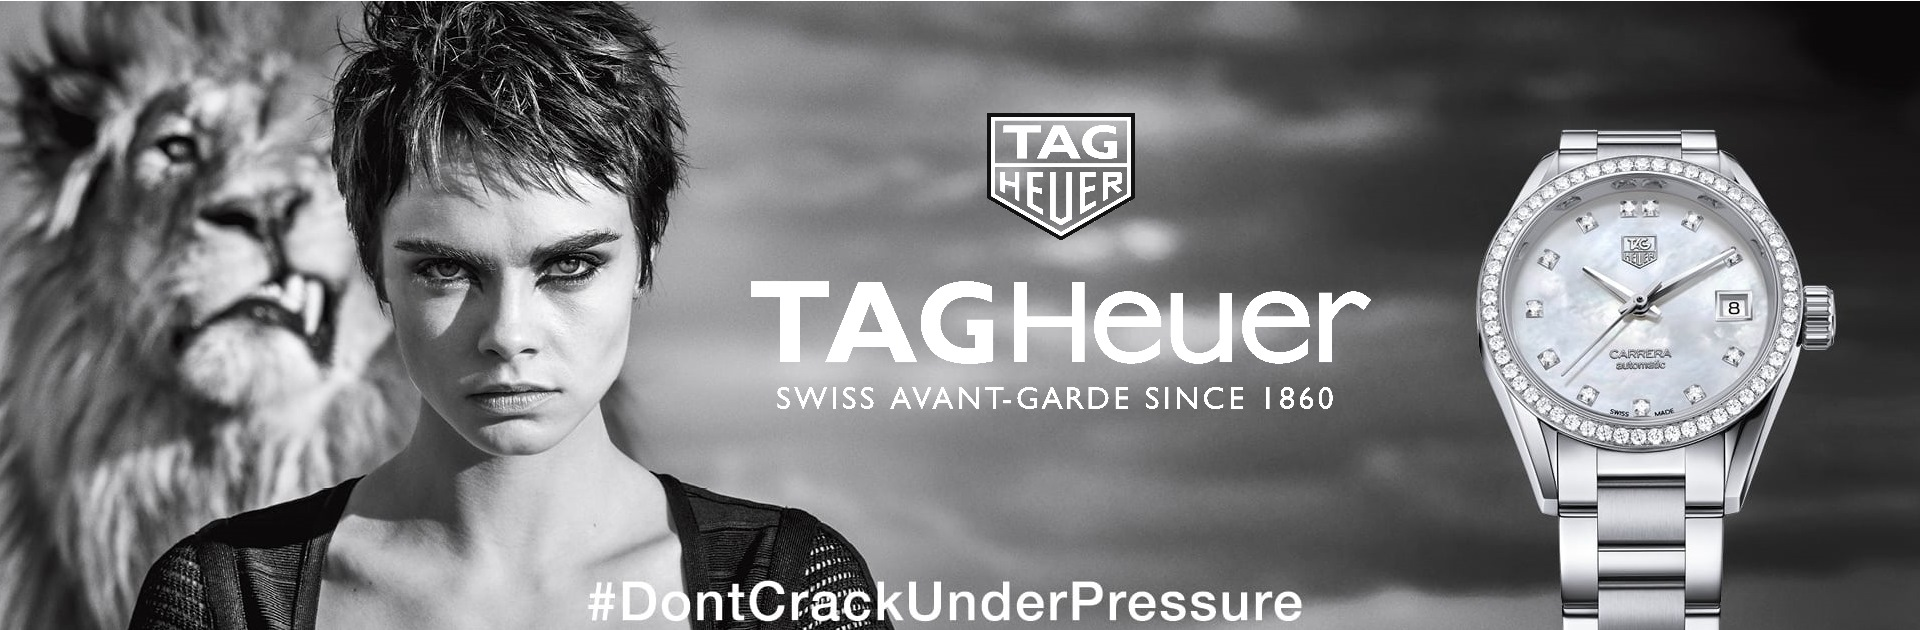 Tag Heuer - Tag Heuer